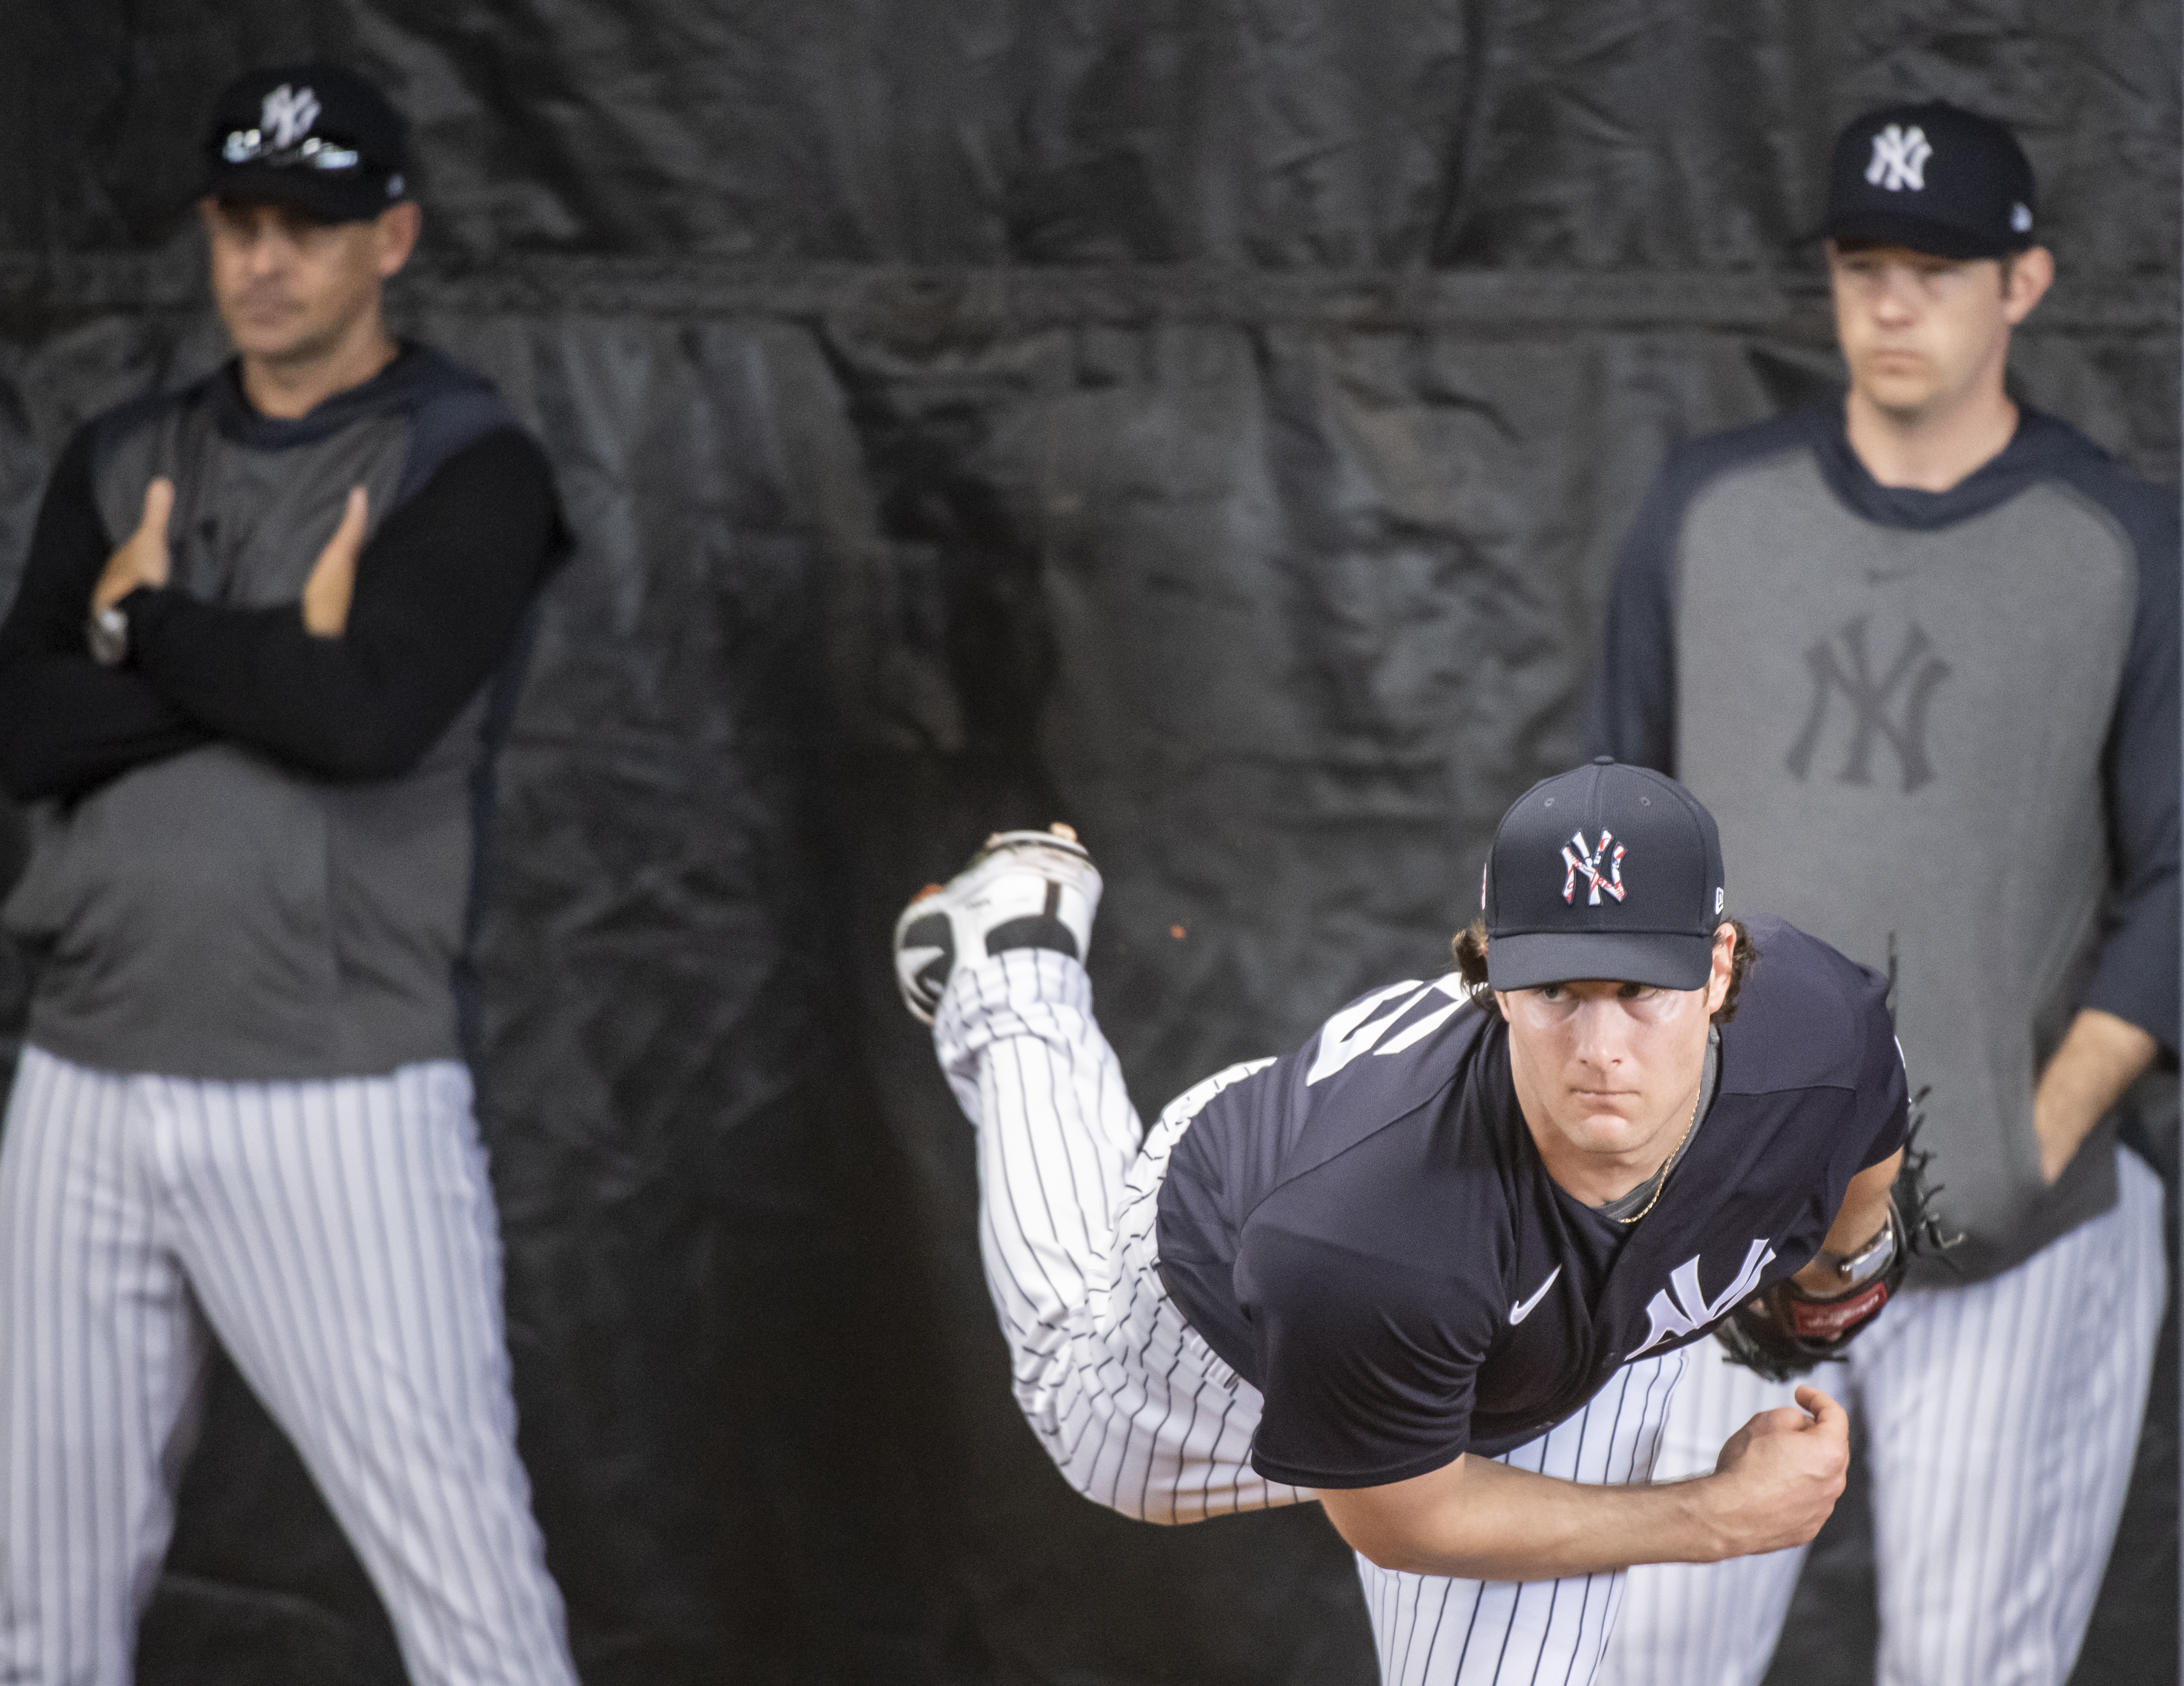 New York Yankees catcher Gerrit Cole throws in the bullpen at spring training 2020